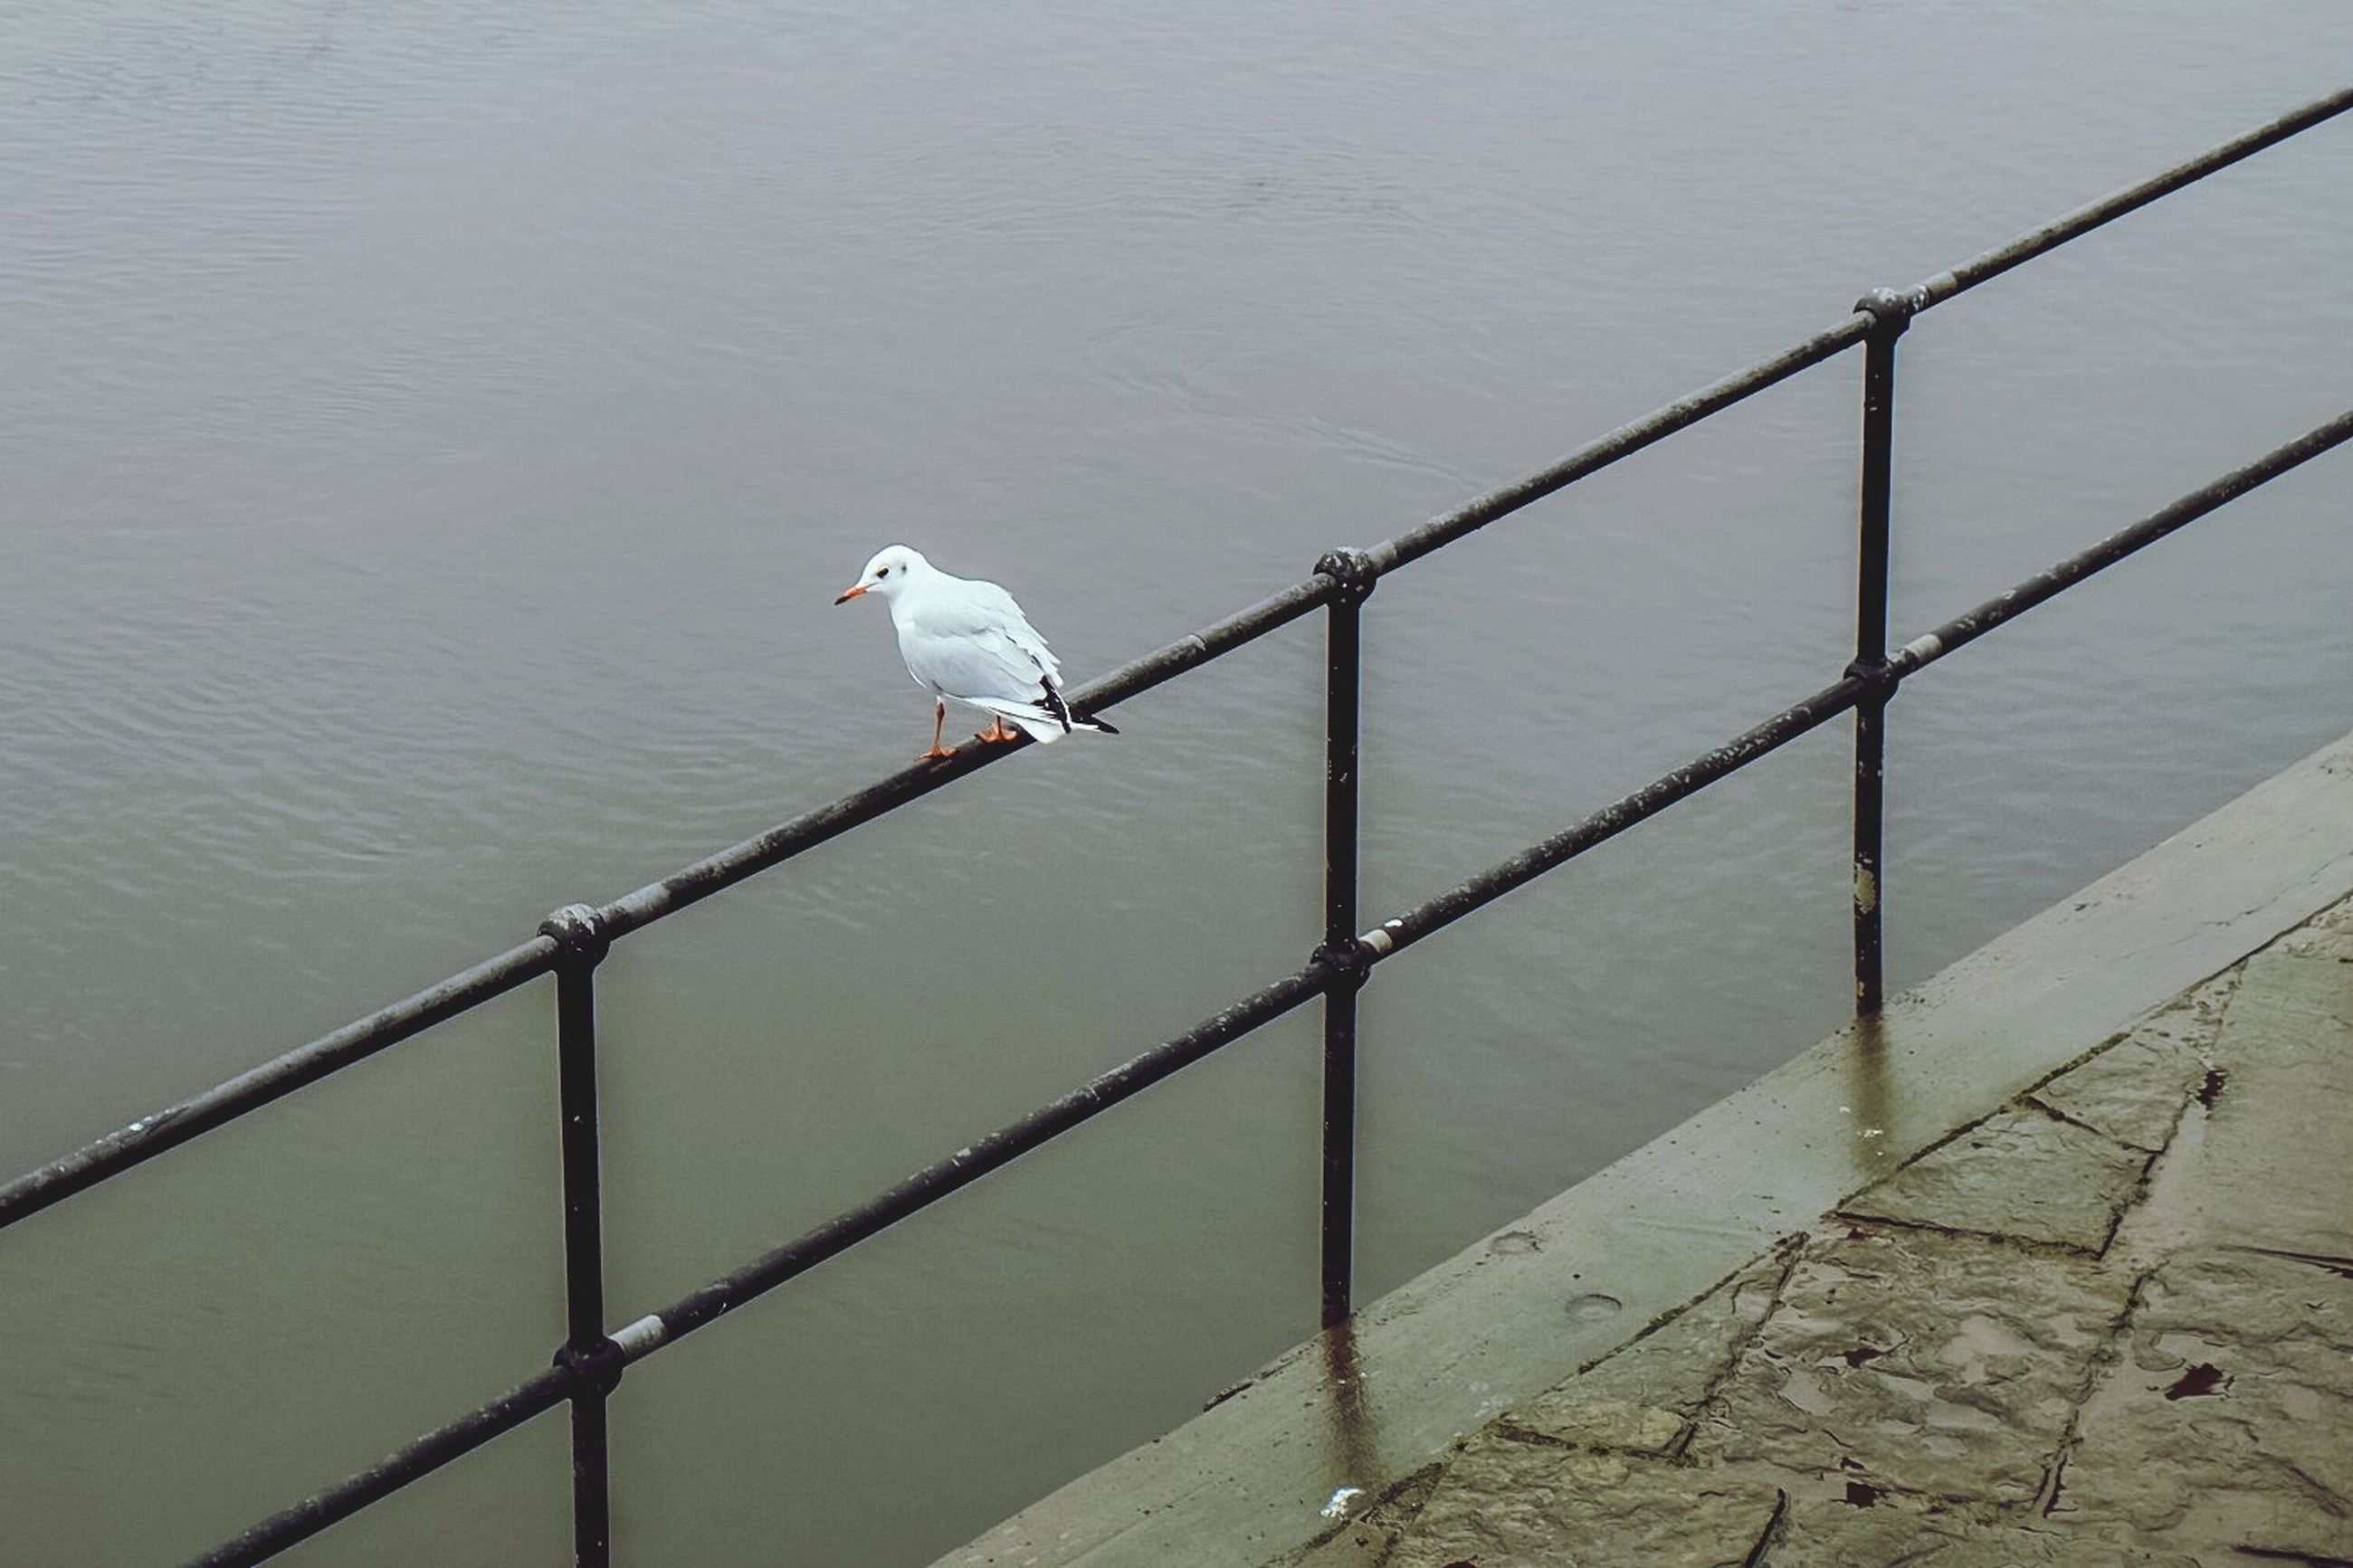 bird, water, animal themes, sea, wildlife, animals in the wild, perching, seagull, one animal, railing, nature, pier, day, outdoors, rippled, no people, lake, tranquility, protection, beauty in nature